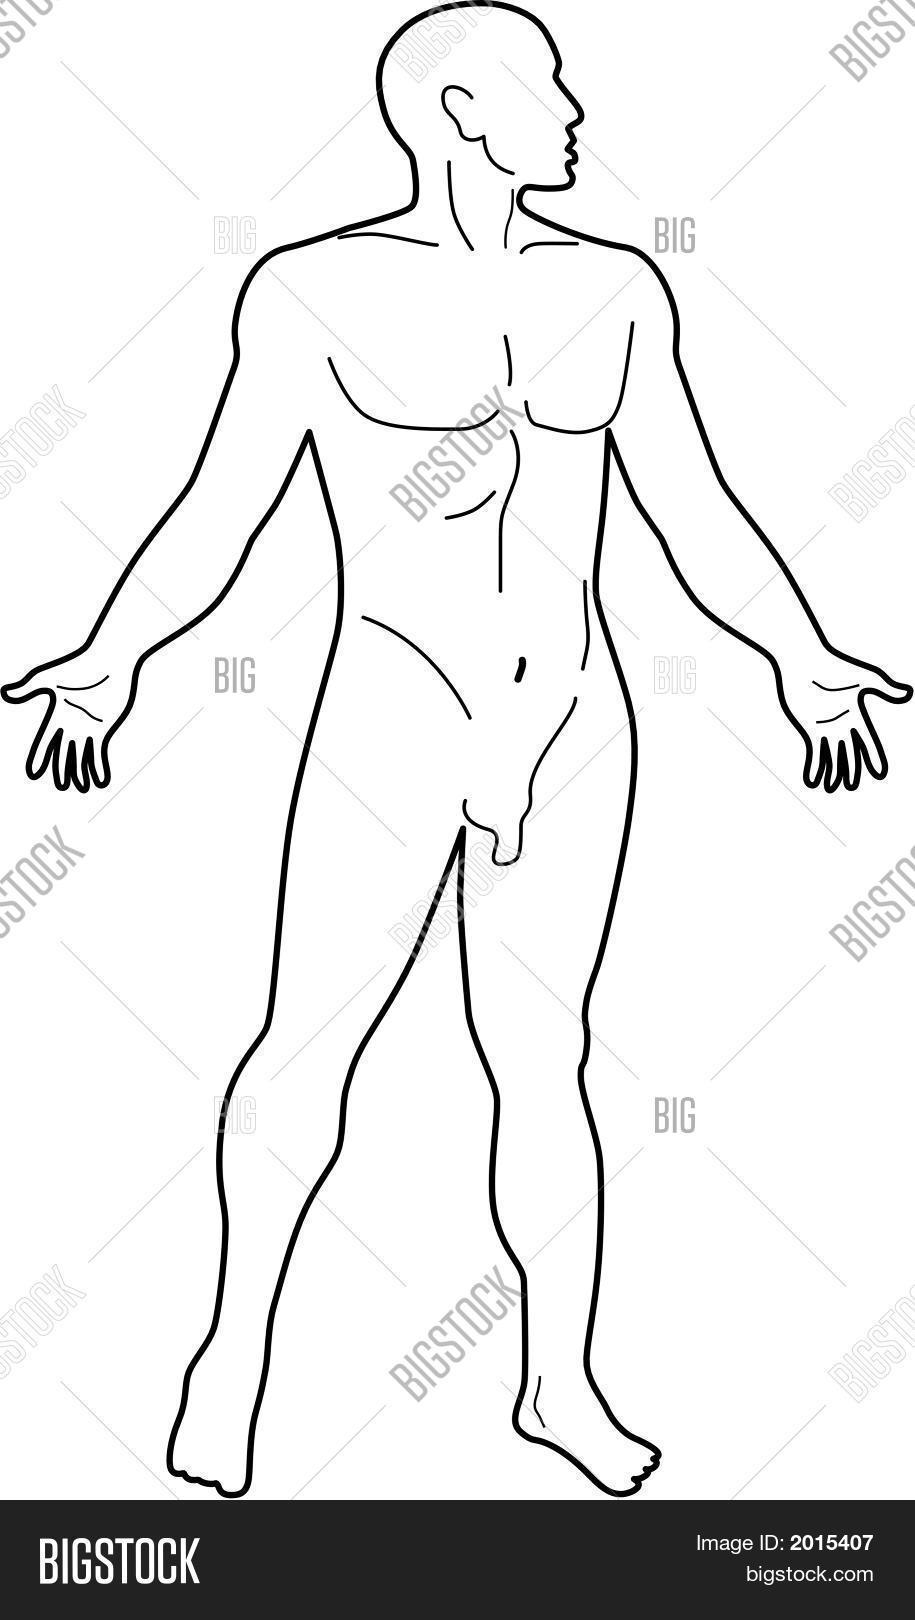 915x1620 Human Anatomy Silhouette Vector Amp Photo Bigstock